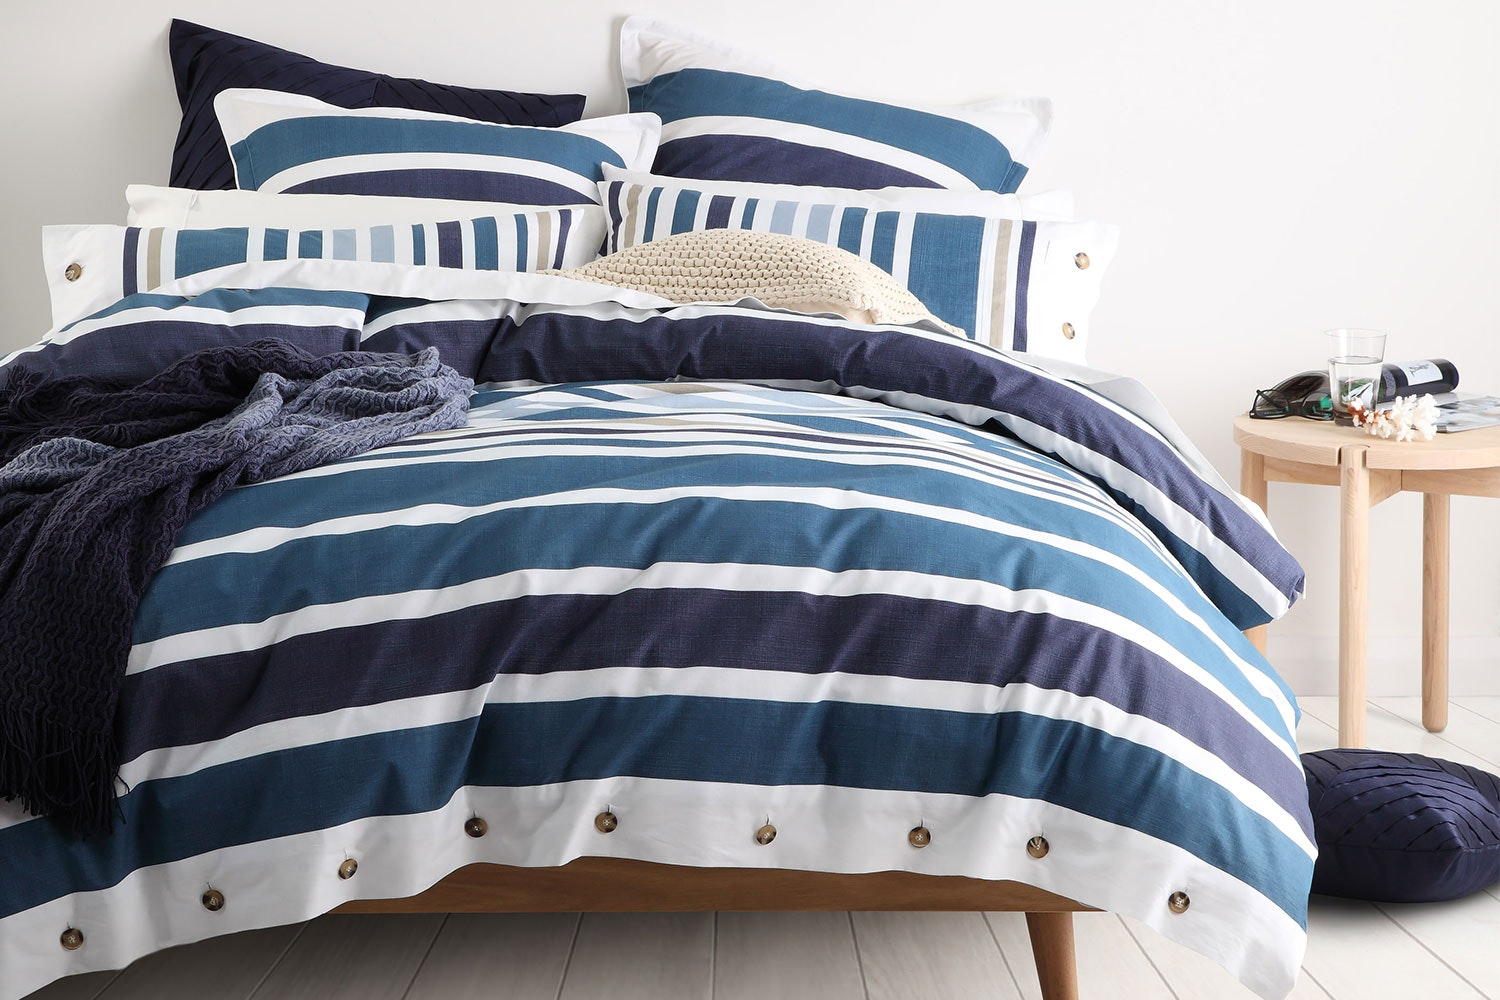 Hunter Navy Duvet Cover Set by Logan and Mason